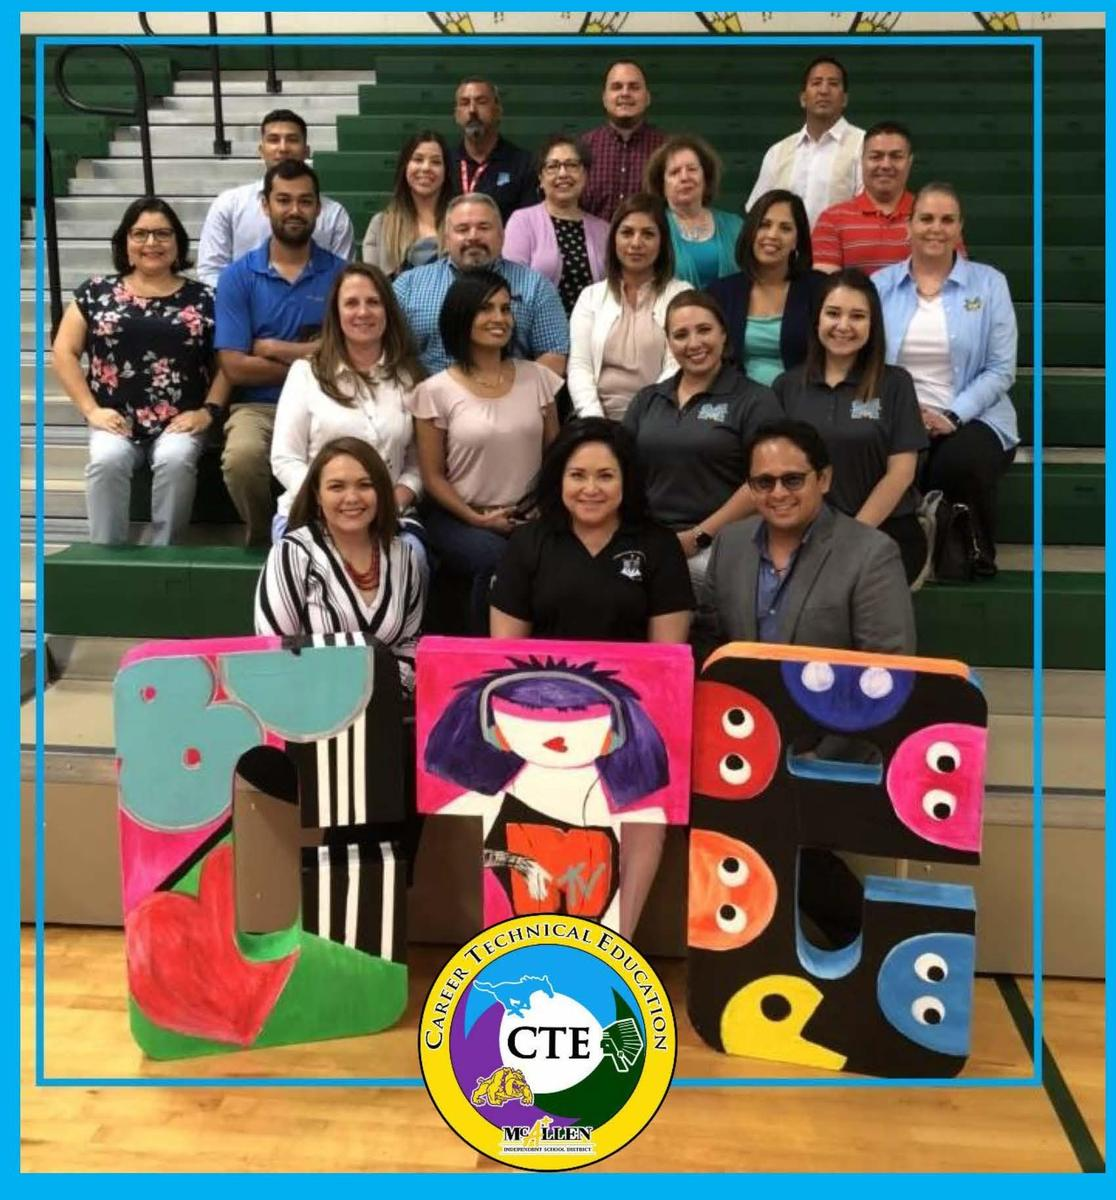 CTE teachers group picture